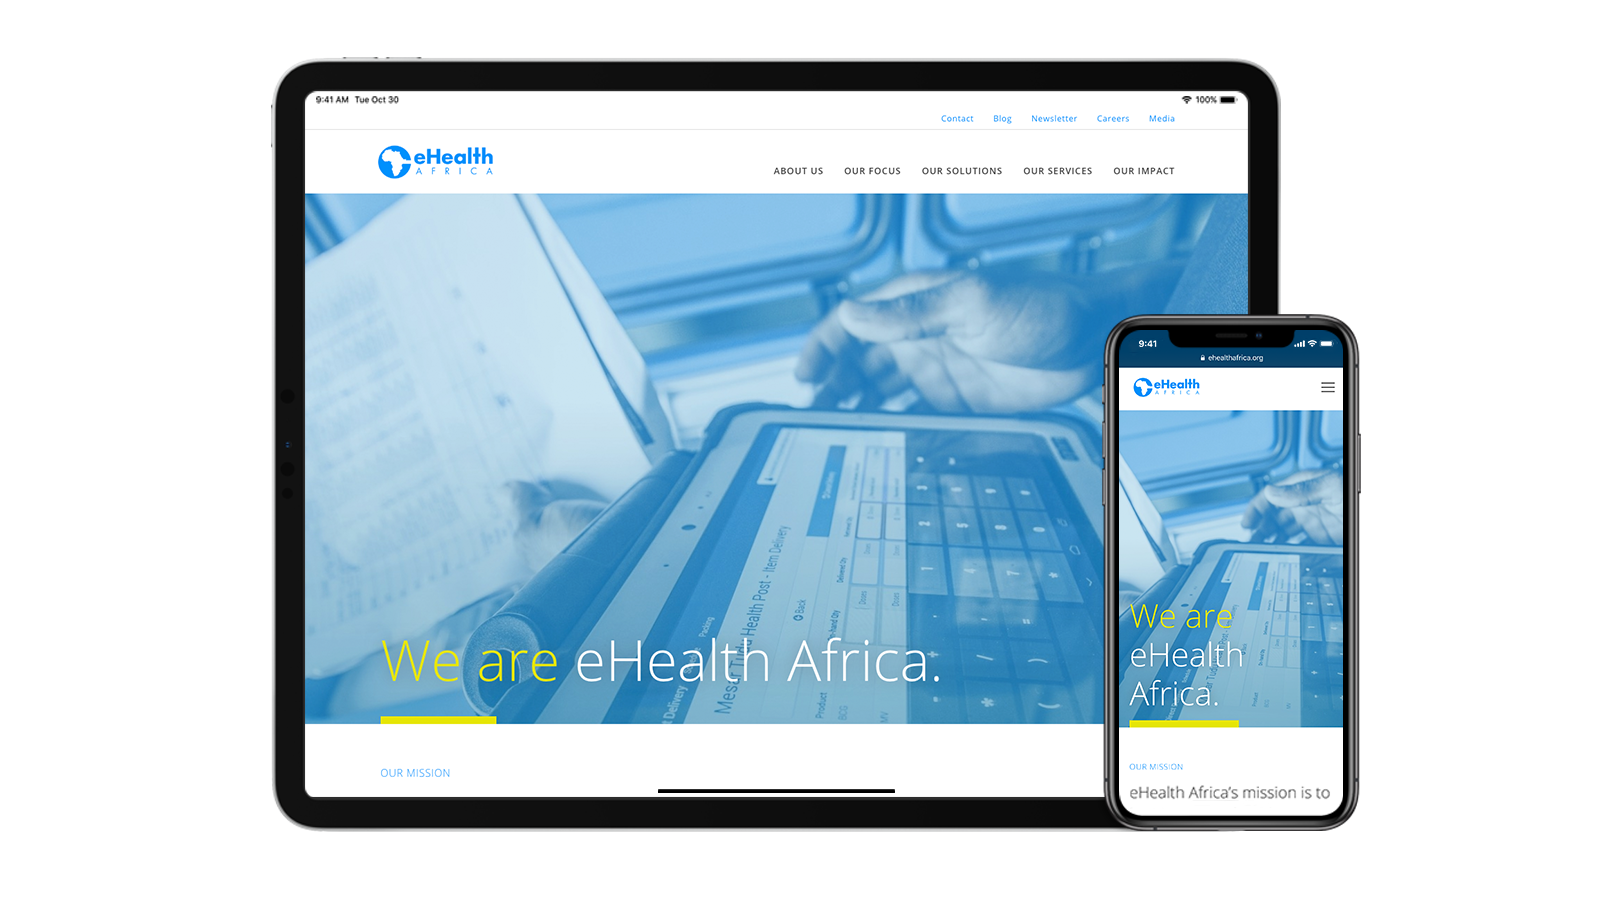 photo-casestudy-ehealth-africa